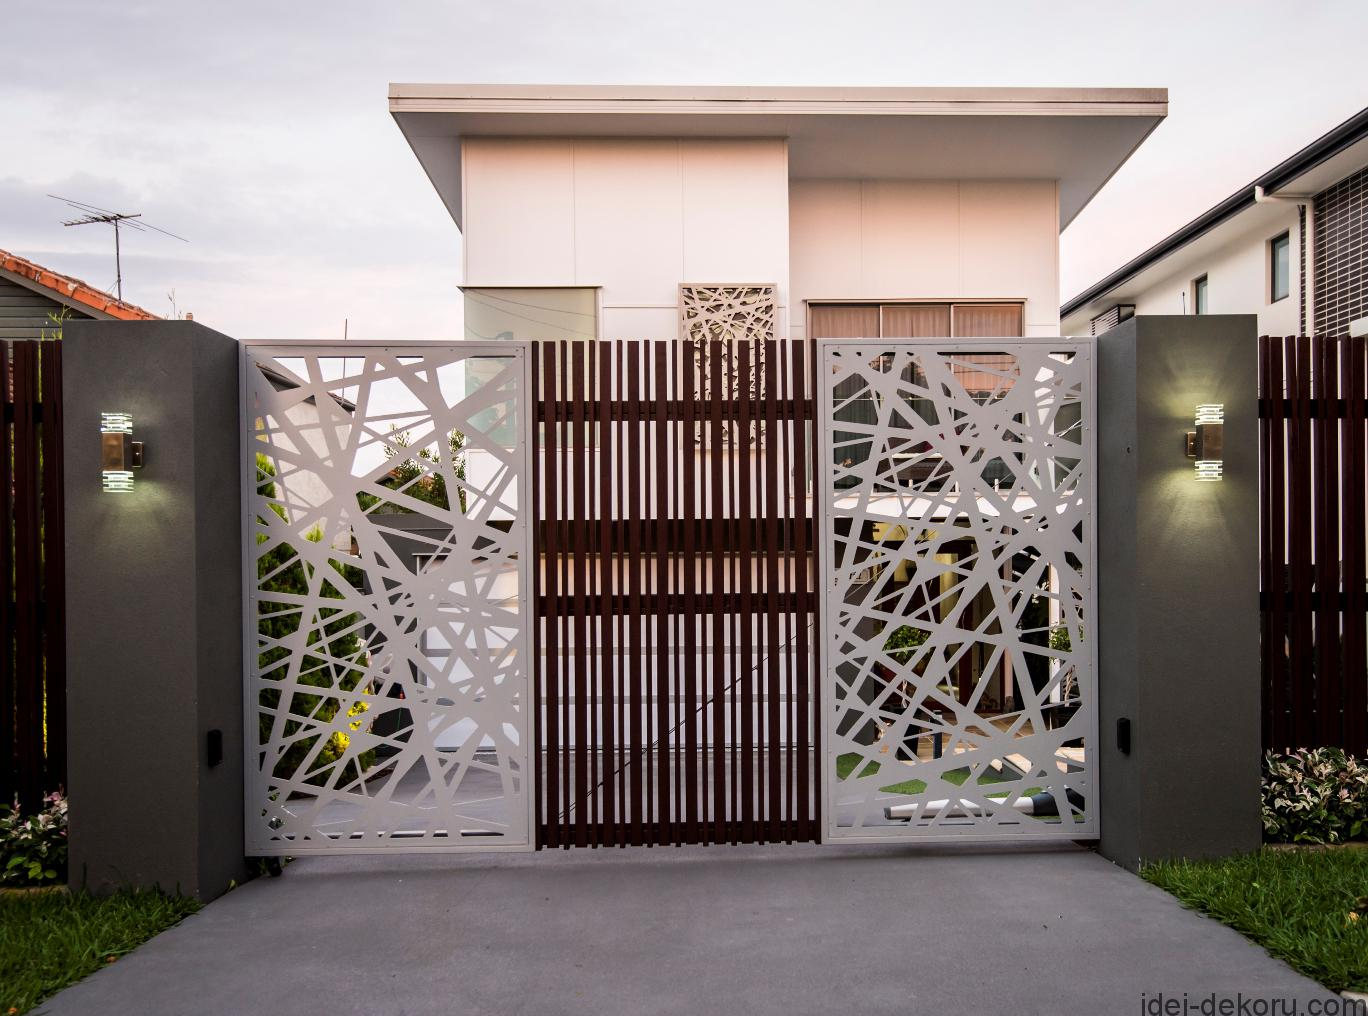 modern-architectural-new-home-brisbane-screened-driveway-gate-metal-designer-lighting-entrance